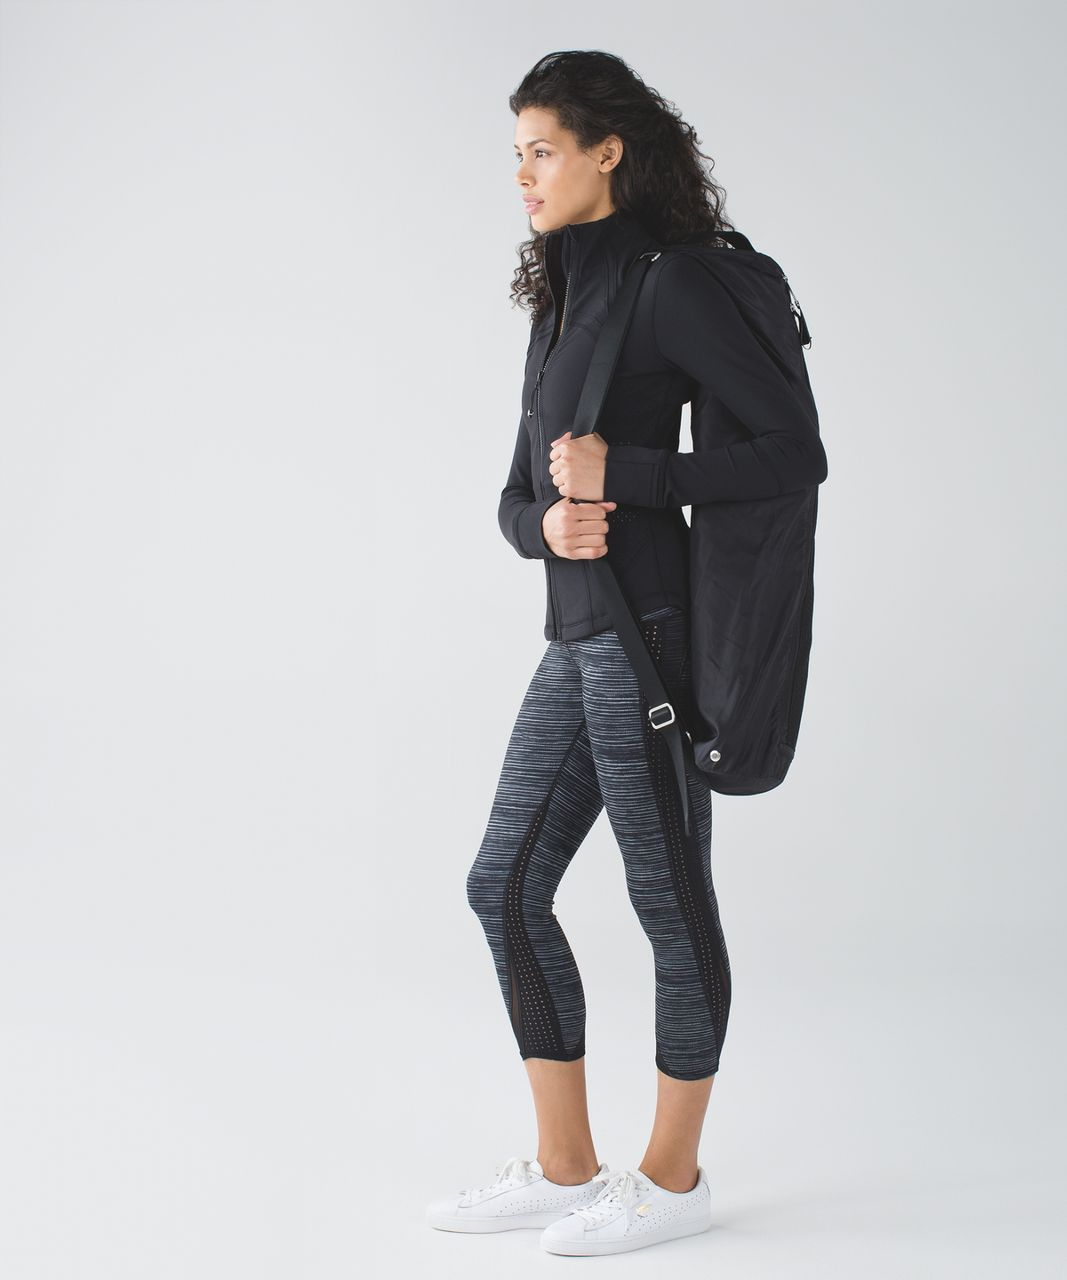 Lululemon Define Jacket (Exhale) - Black